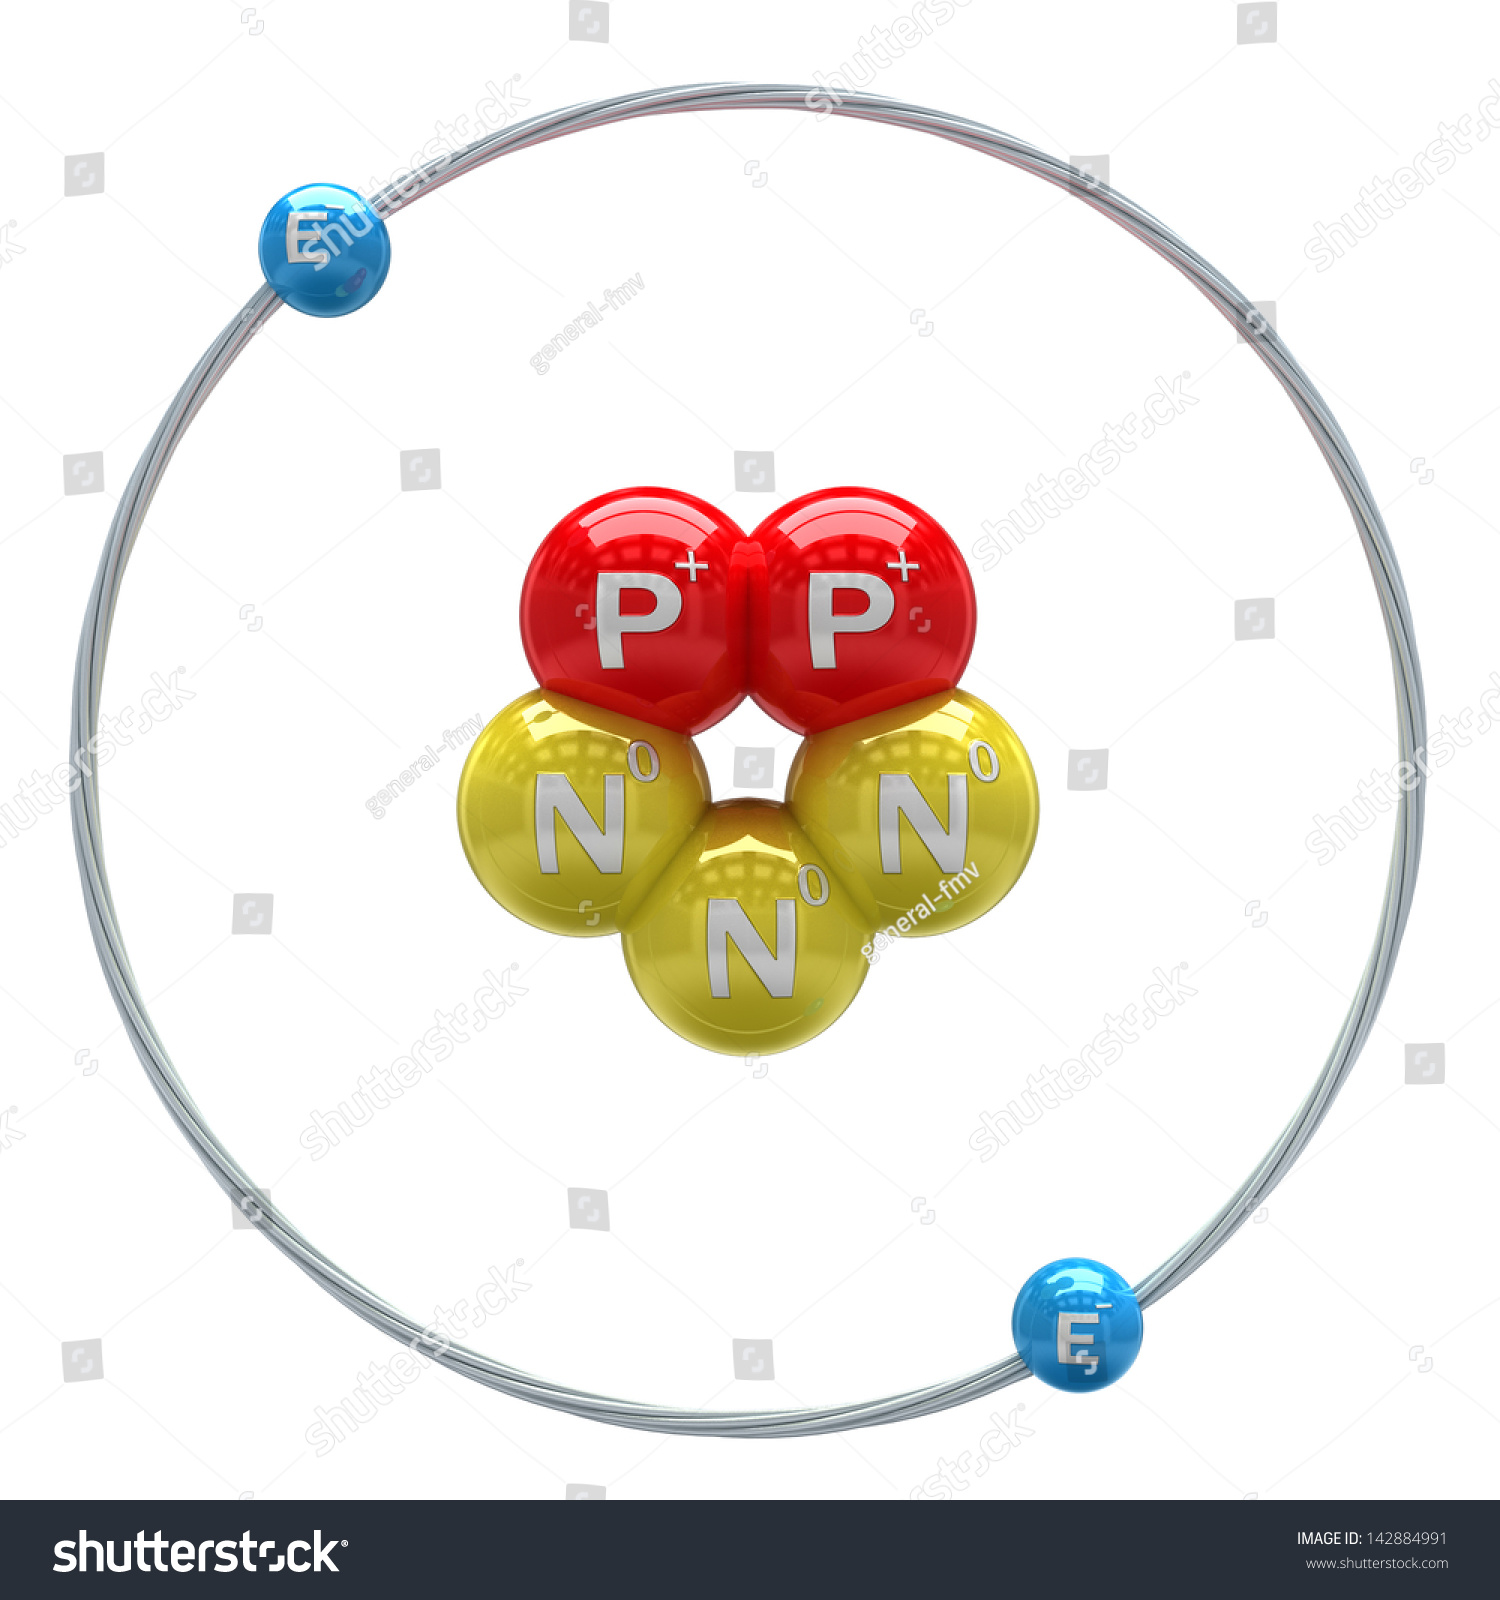 Helium (Unstable Isotope) Atom On White Background Stock ...